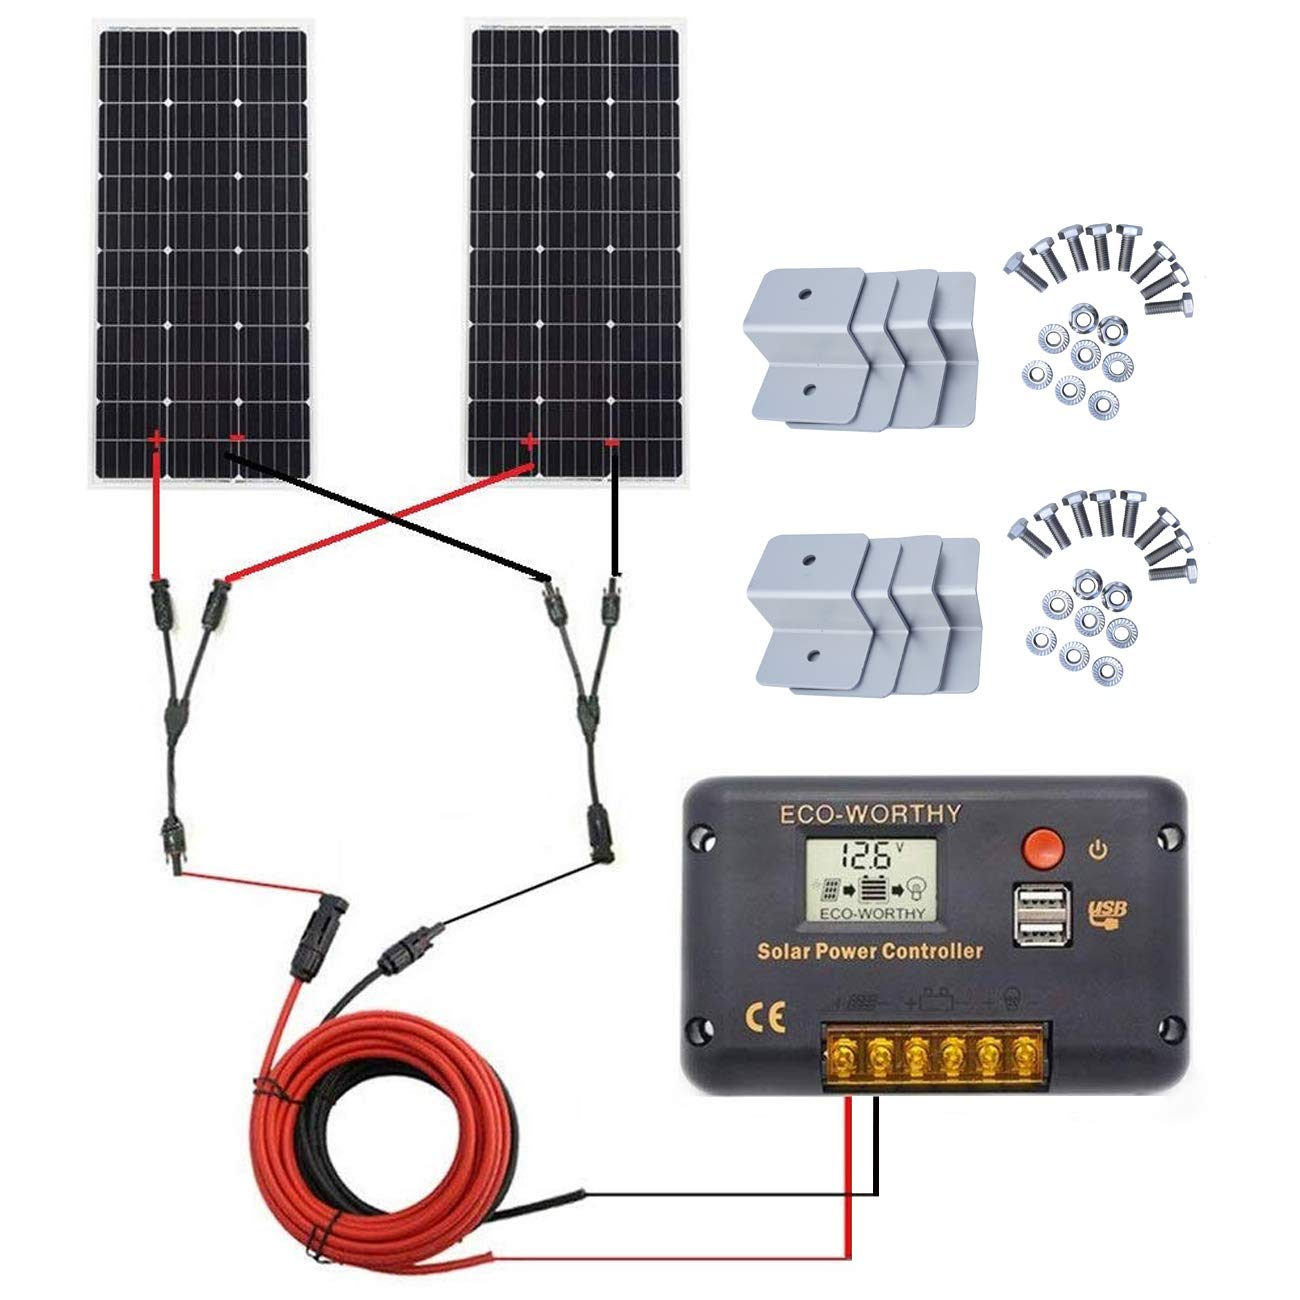 ECO-WORTHY 200 Watt (2pcs 100W) Monocrystalline Solar Panel Complete Off-Grid RV Boat Kit with LCD Charge Controller + Solar Cable + Mounting Brackets for Homes RVs Car Battery Charging by ECO-WORTHY